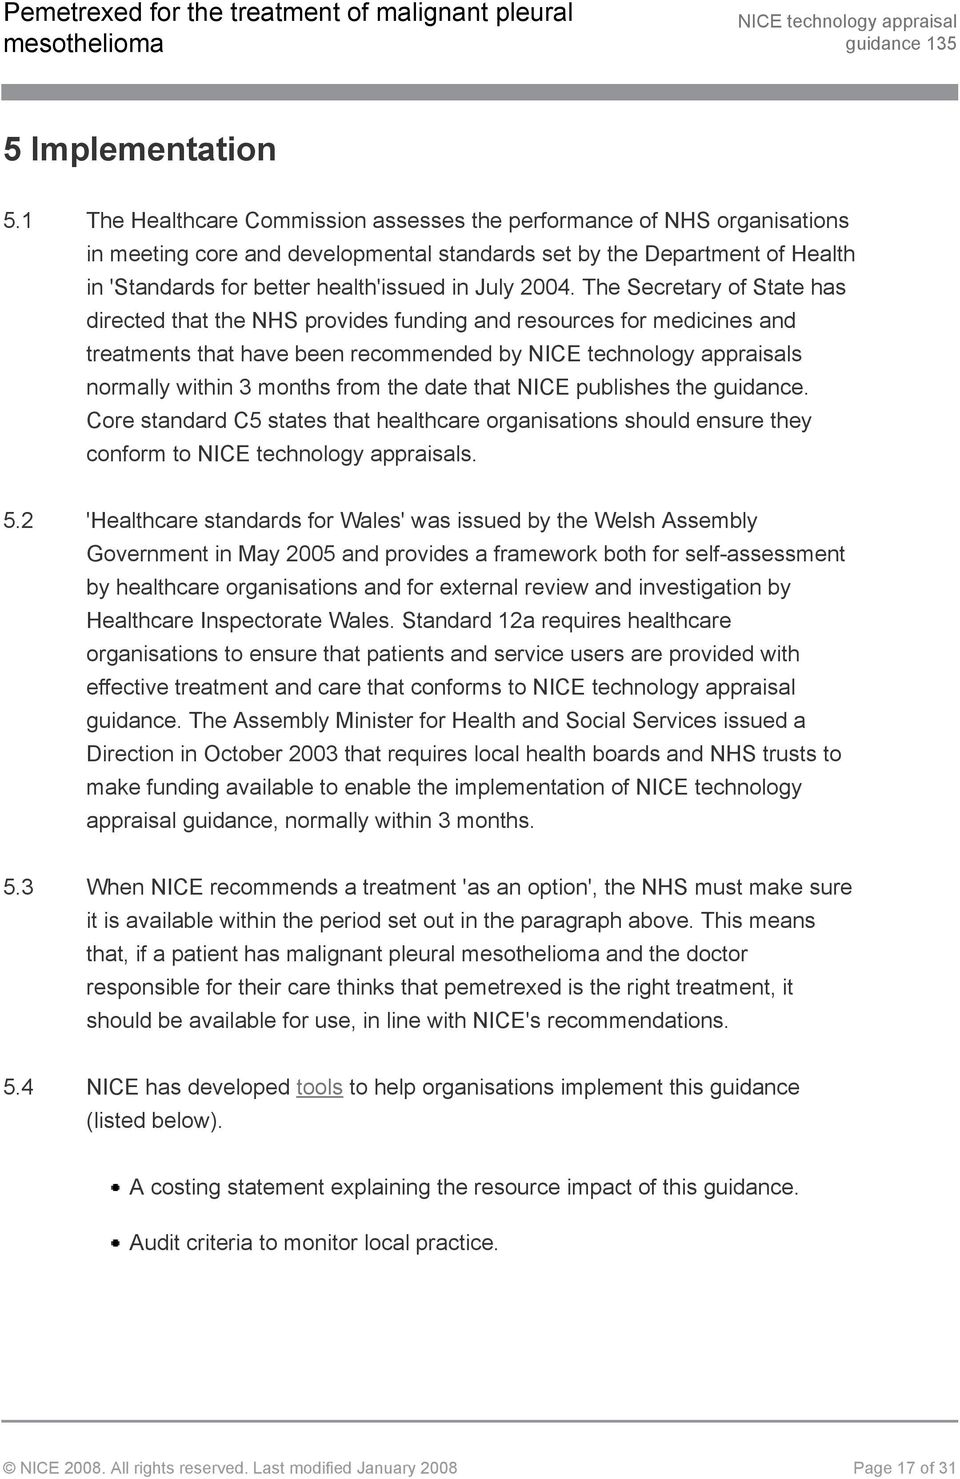 2004. The Secretary of State has directed that the NHS provides funding and resources for medicines and treatments that have been recommended by s normally within 3 months from the date that NICE